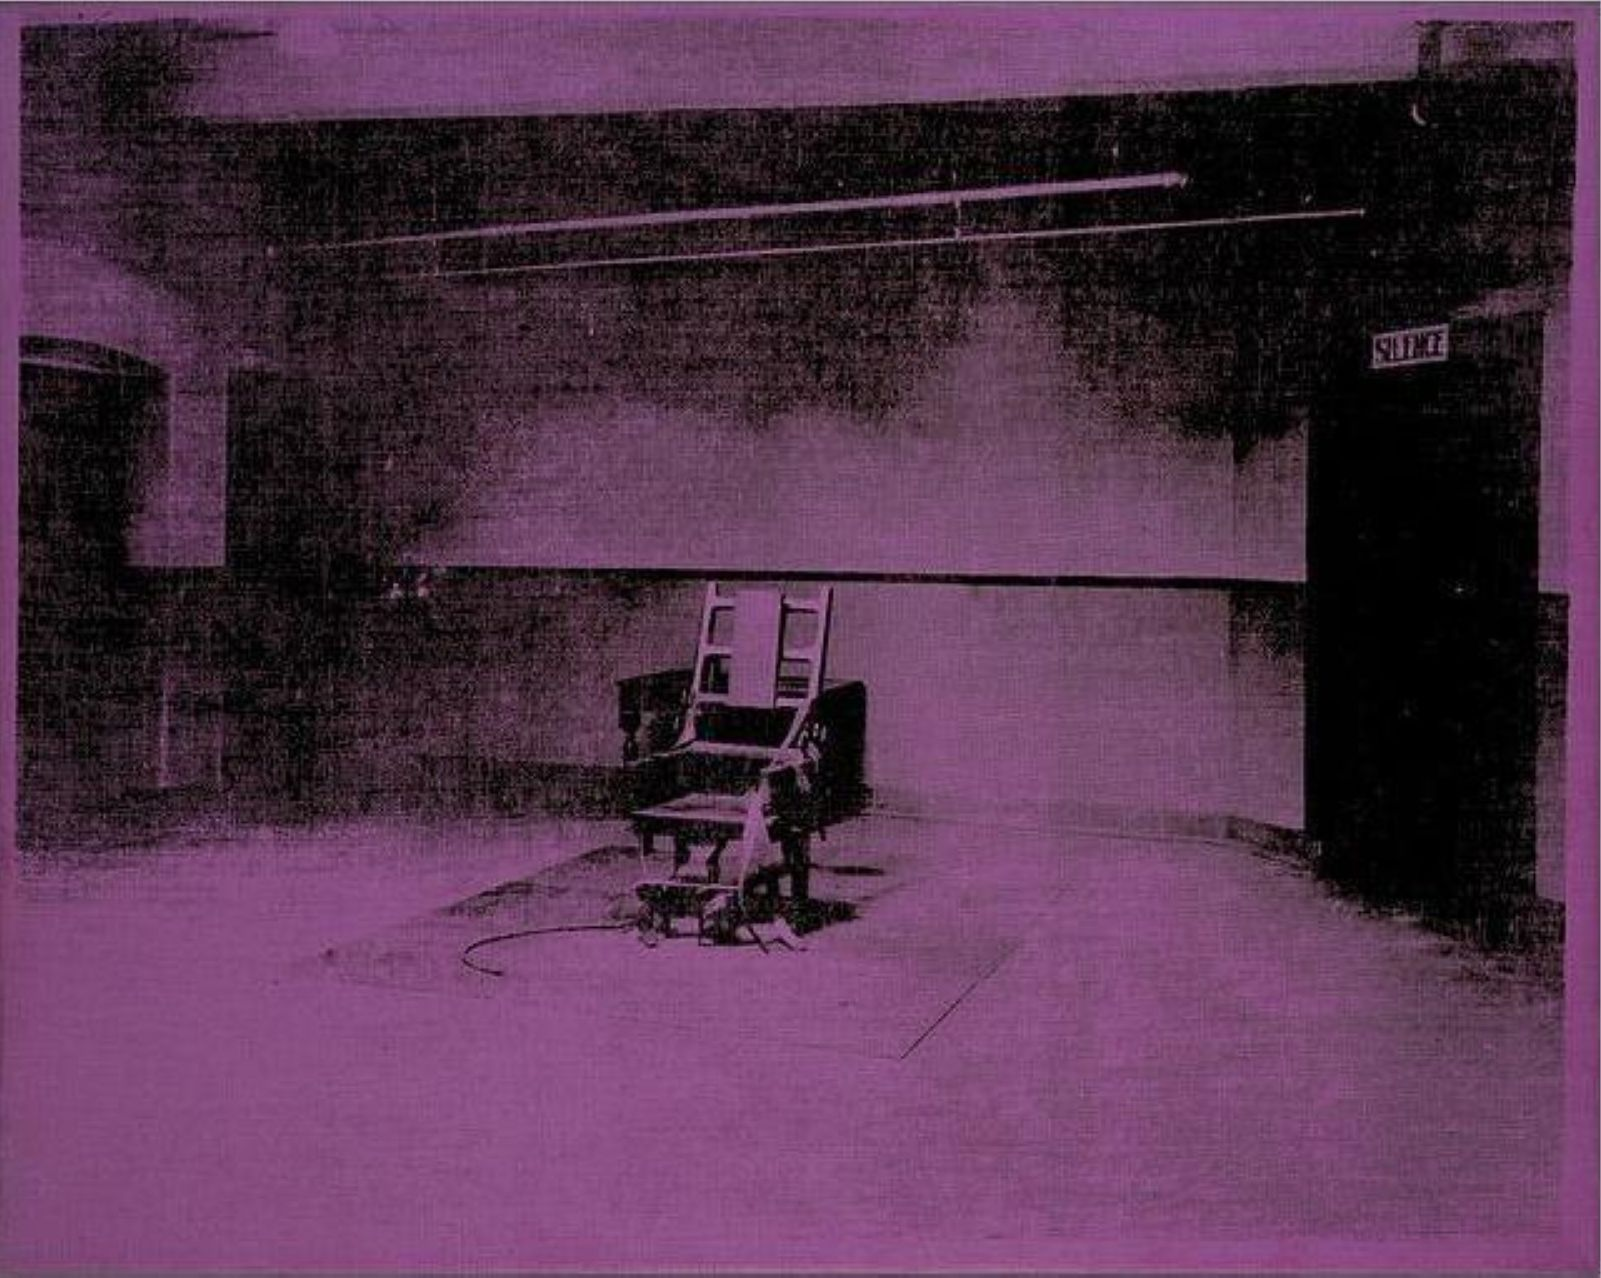 Electric chair andy warhol - Andy Warhol Little Electric Chair X 71 Cm Silkscreen Ink